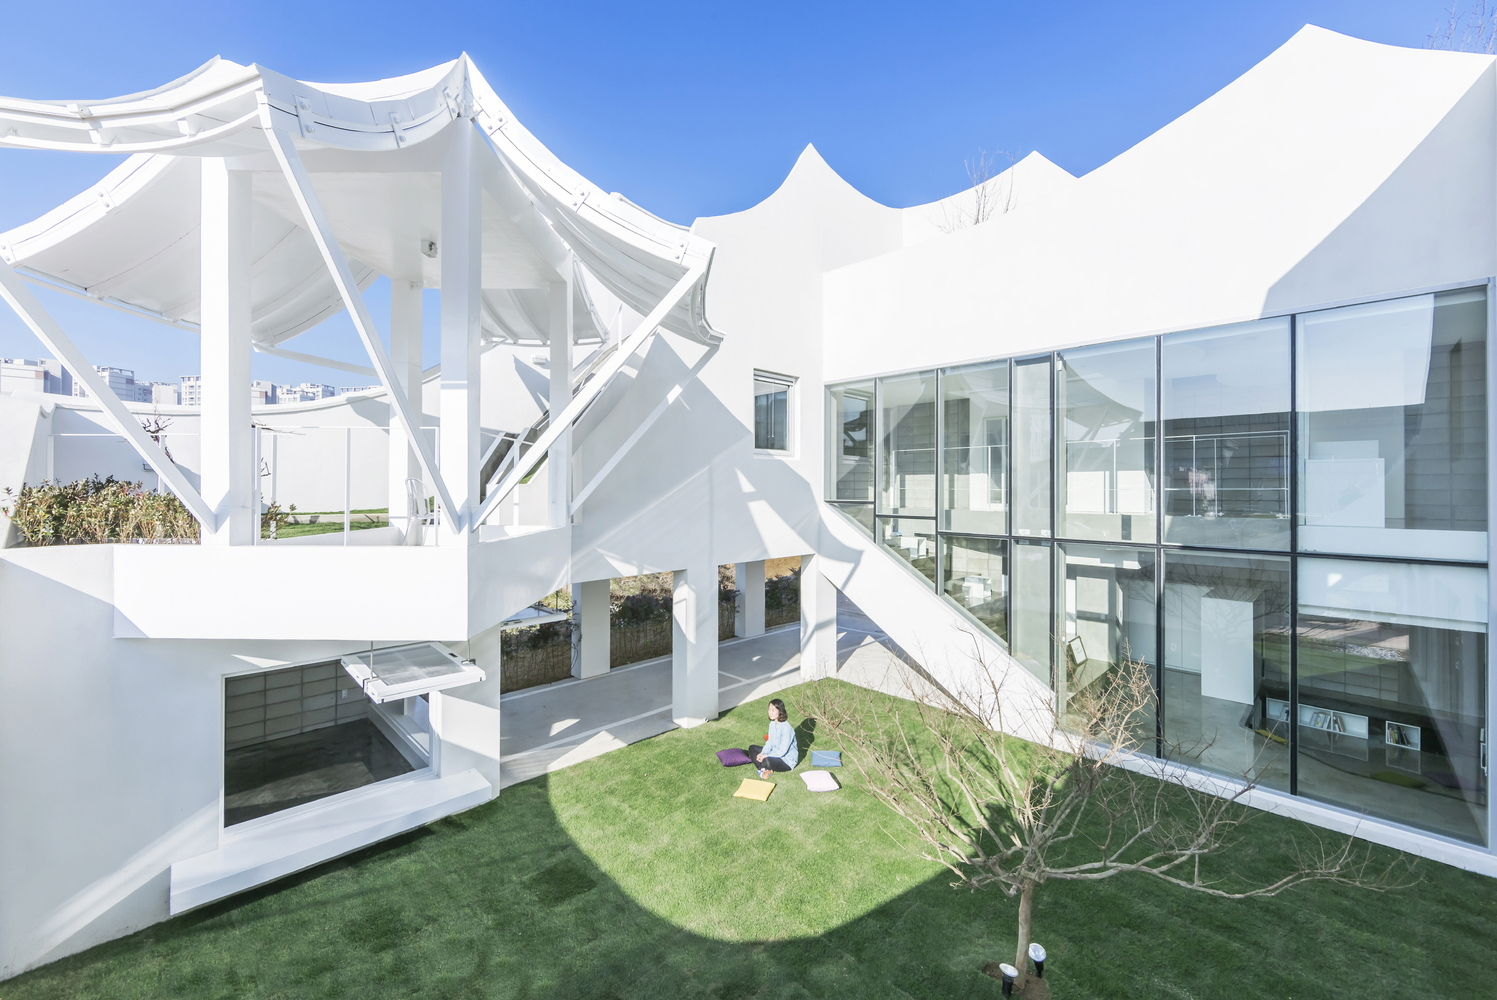 This house belongs to a young pilot and his family and it expresses movement and gives a modern take on traditional Korean architecture